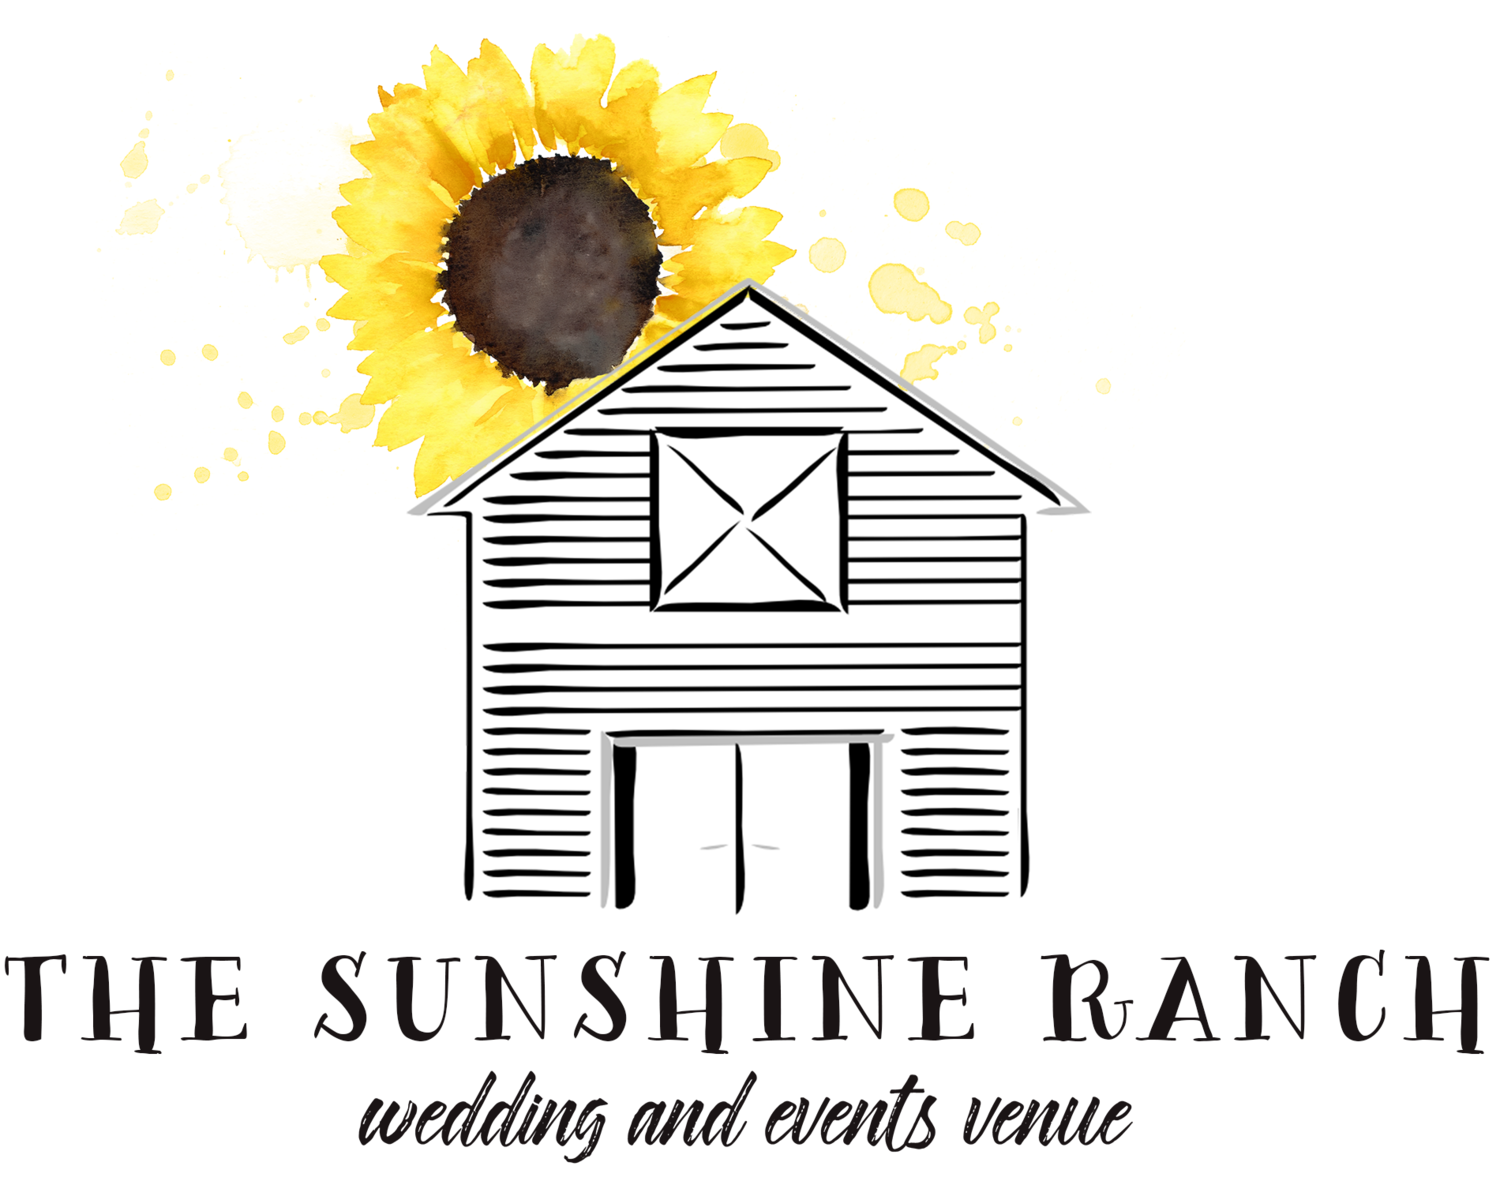 The Sunshine Ranch